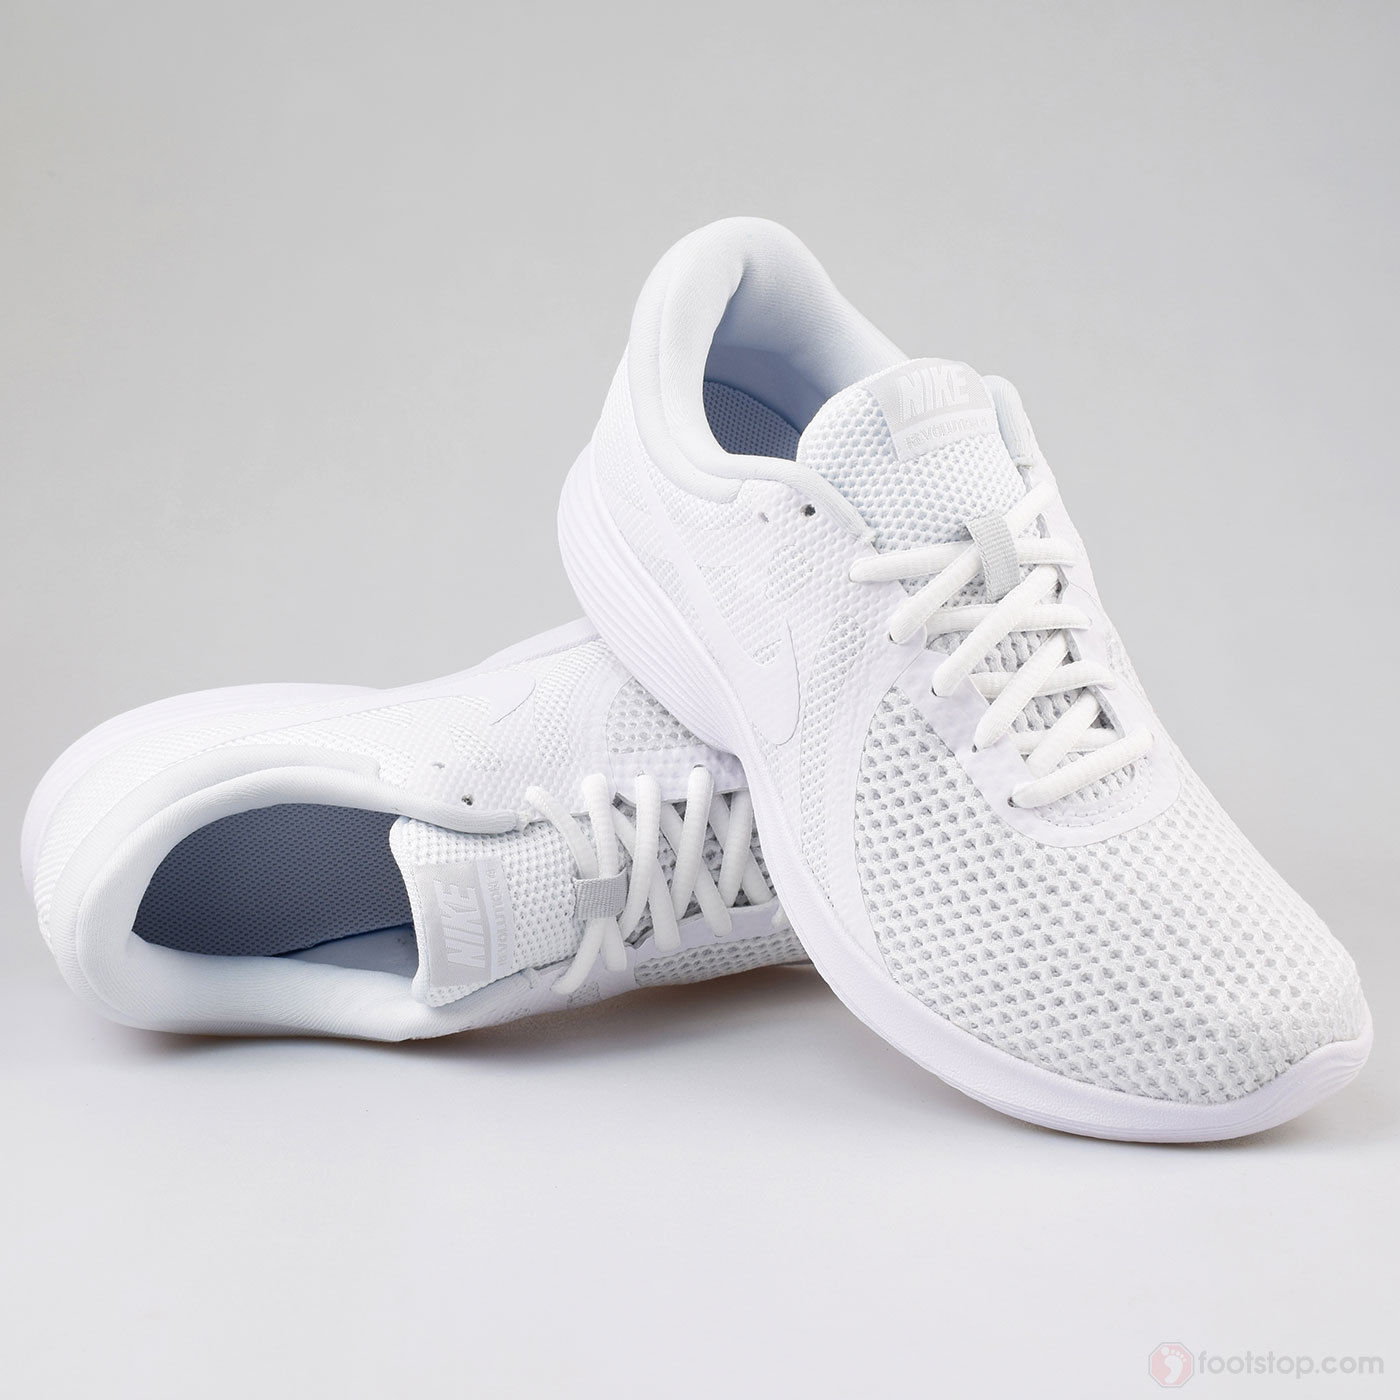 Nike Revolution 4 shoes Sneakers Ginnastica Tennis Running 2018 Bianco men